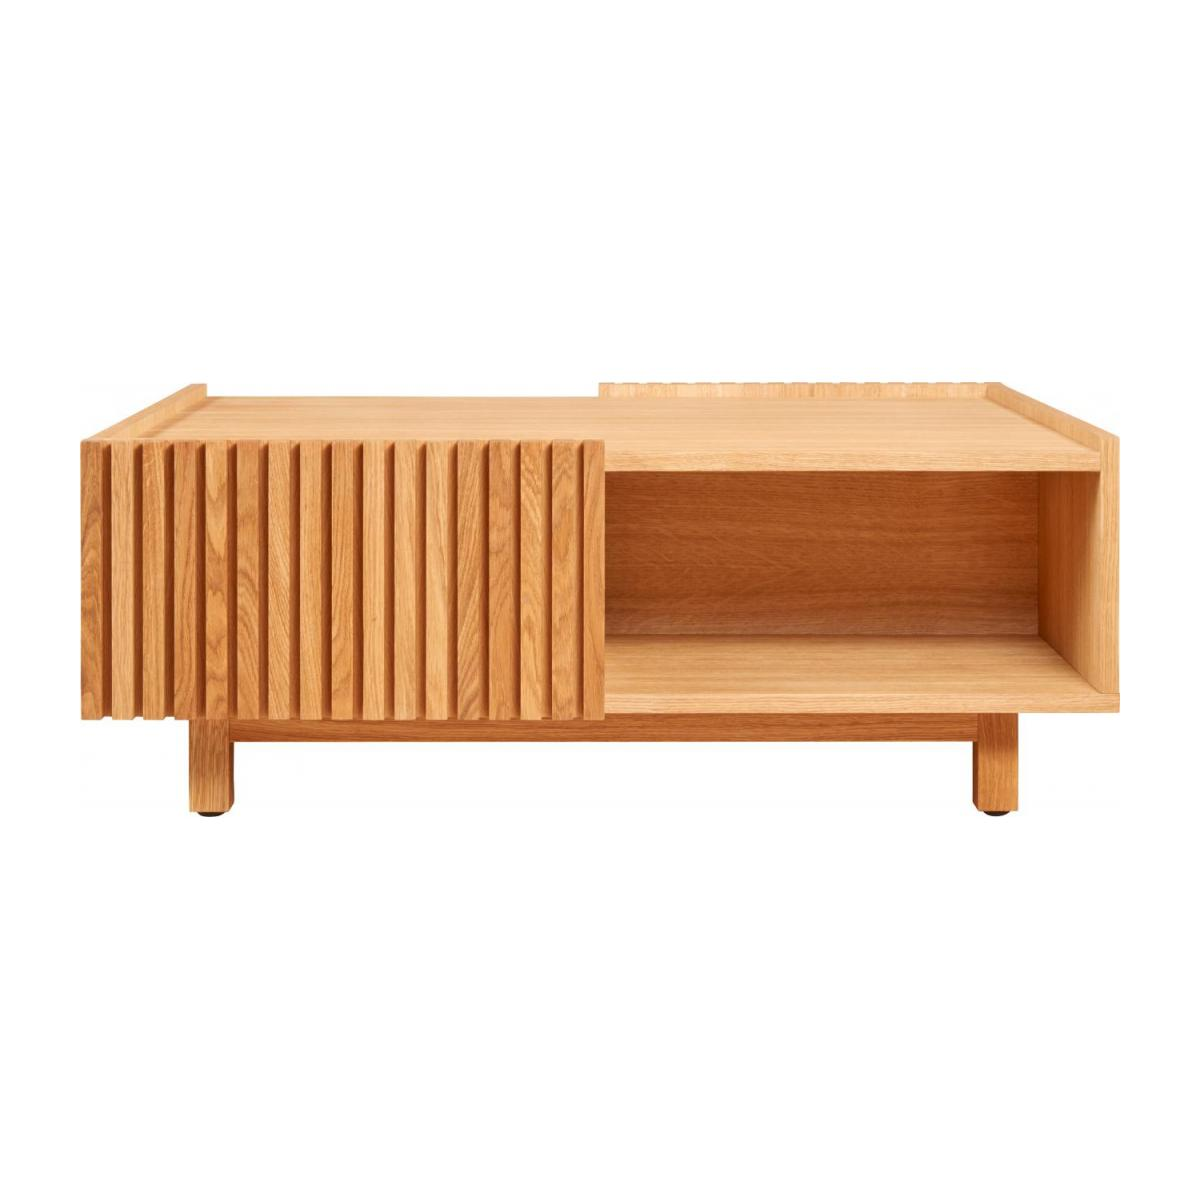 Oak low table n°2